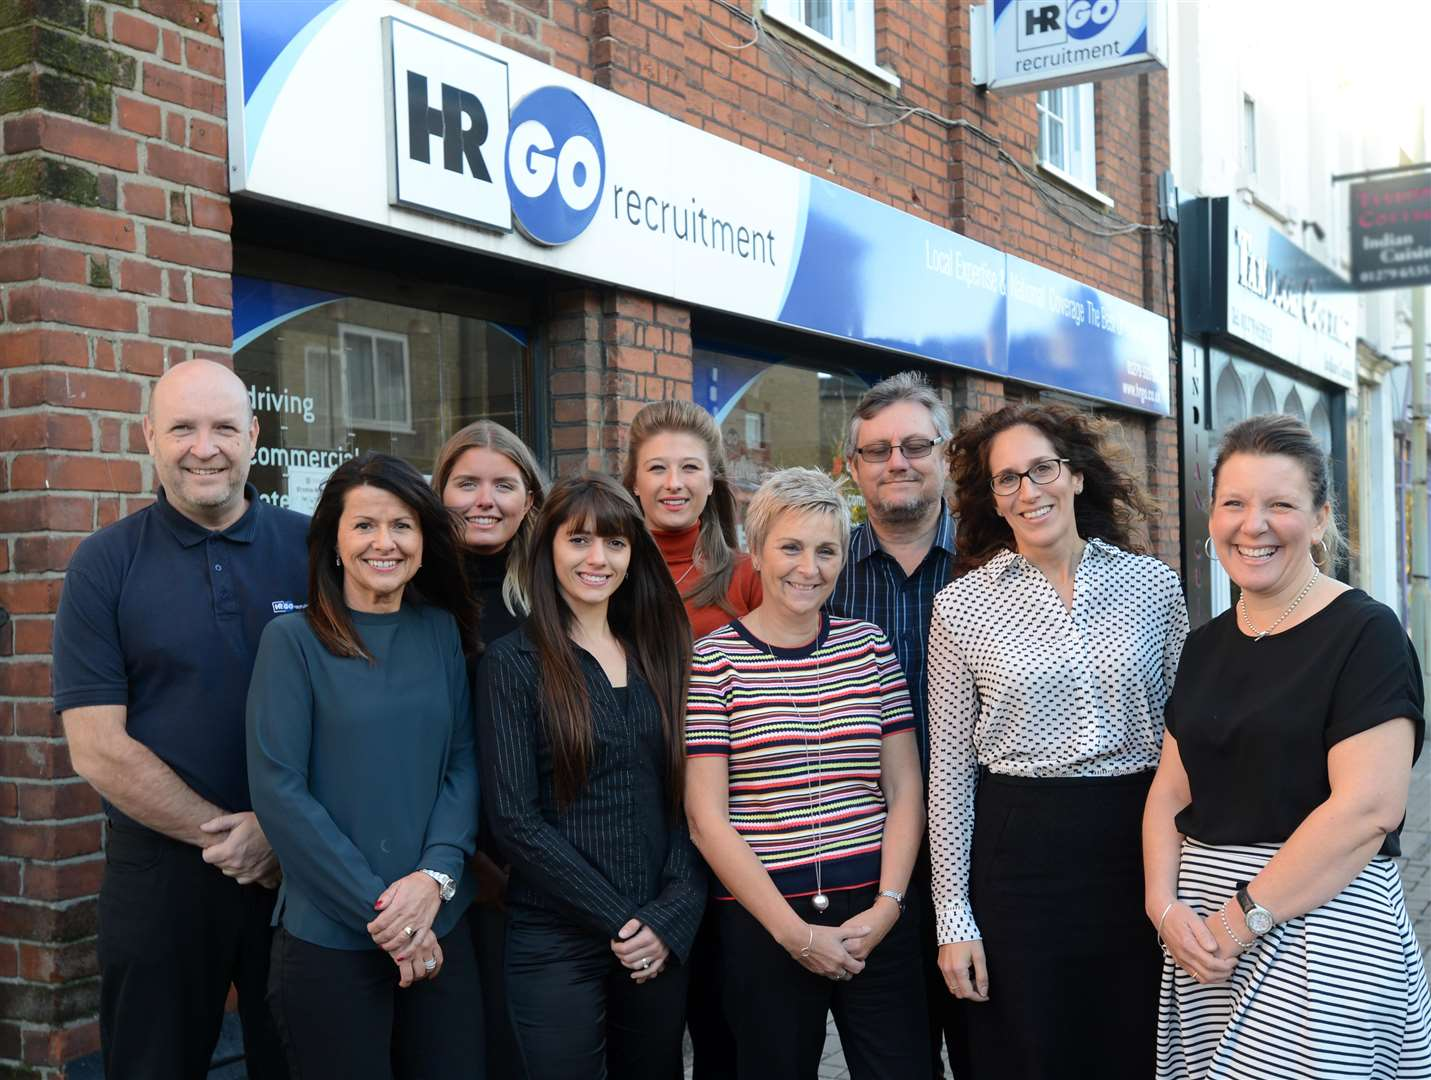 HR GO, Northgate End,Bishops Stortford.The Team at HR GO.l-r: Terry Trundle, Lorraine Button, Molly Curran, Abbey Hare, Laura Baxter, Marie Watts, Kelvin Buick, Tanya Stevens, Kelly Howard. .Pic: Vikki Lince. (5850882)